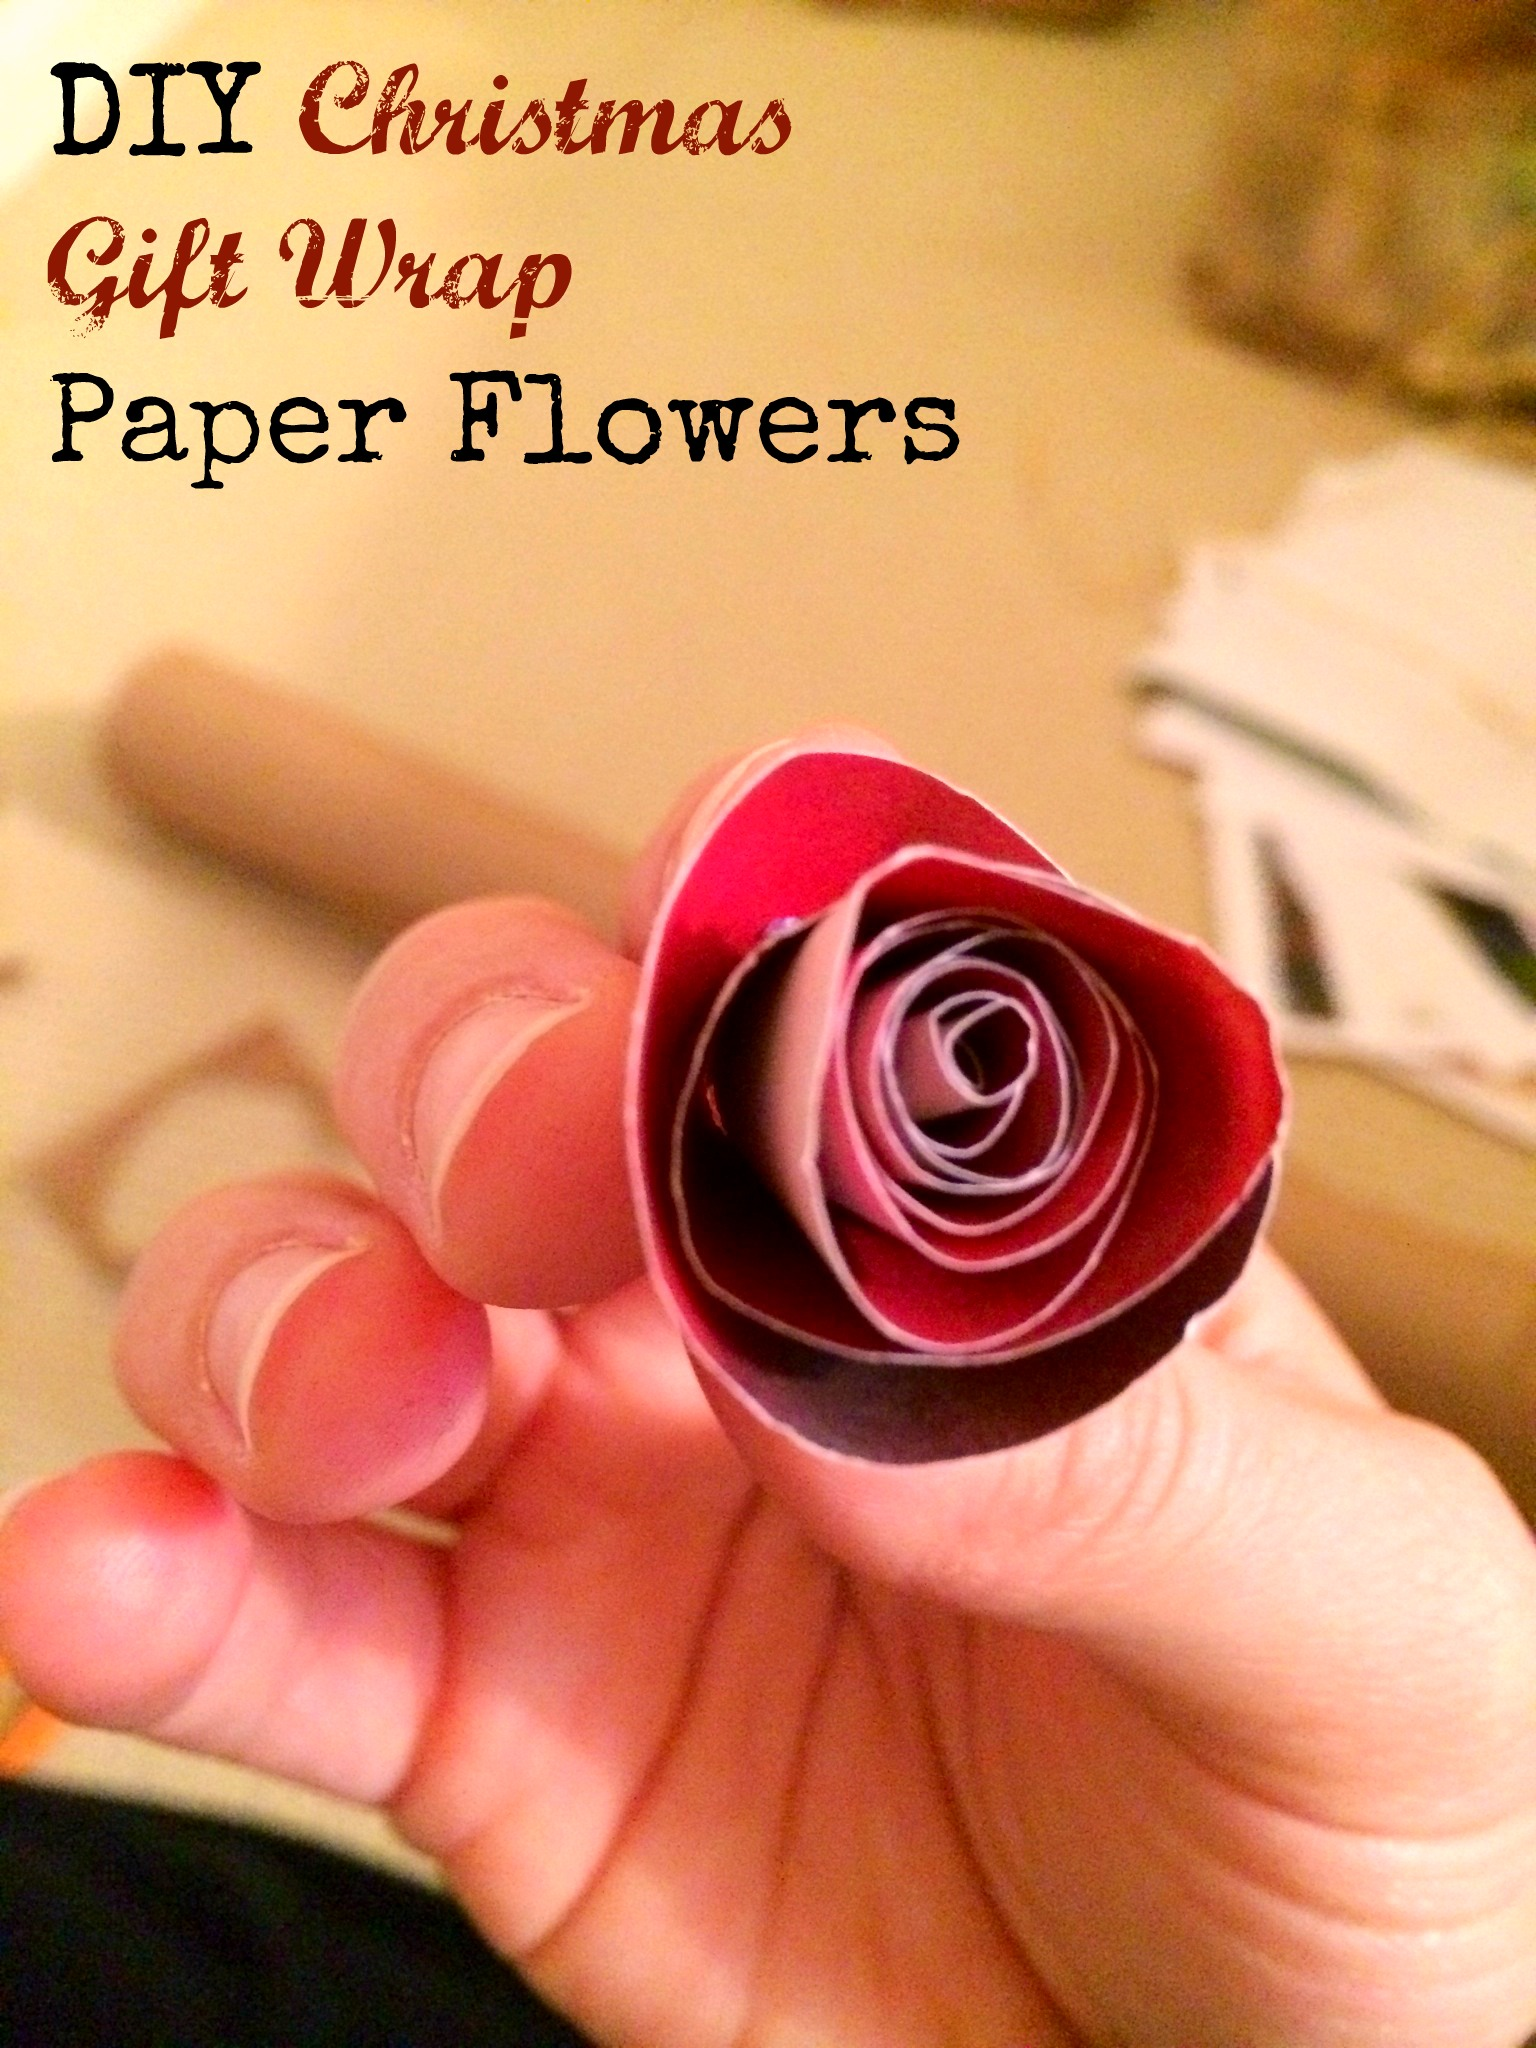 How To Make A Flower Out Of Wrapping Paper Selol Ink